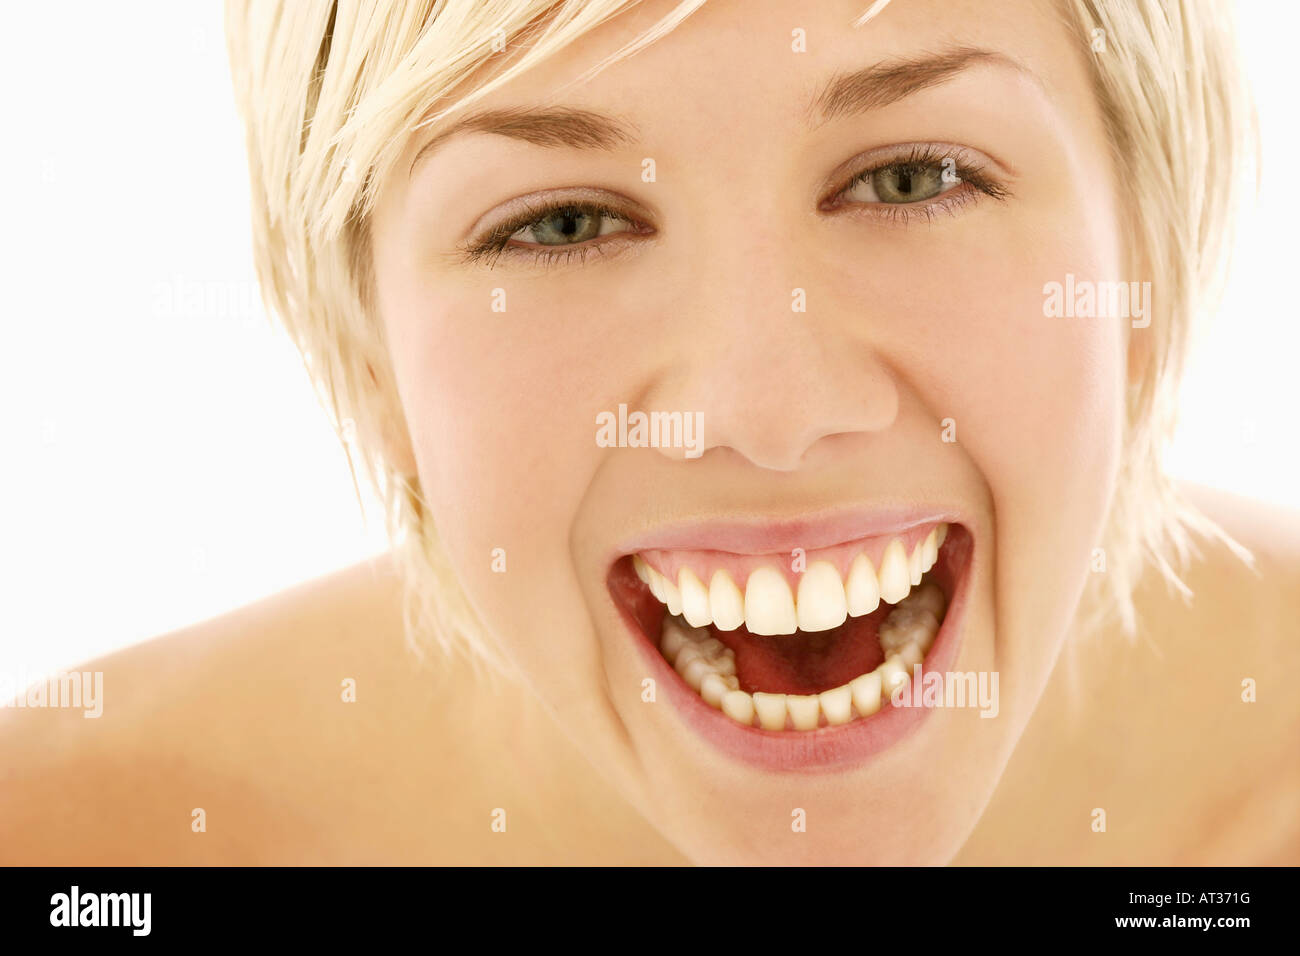 A portrait of young woman, laughing - Stock Image